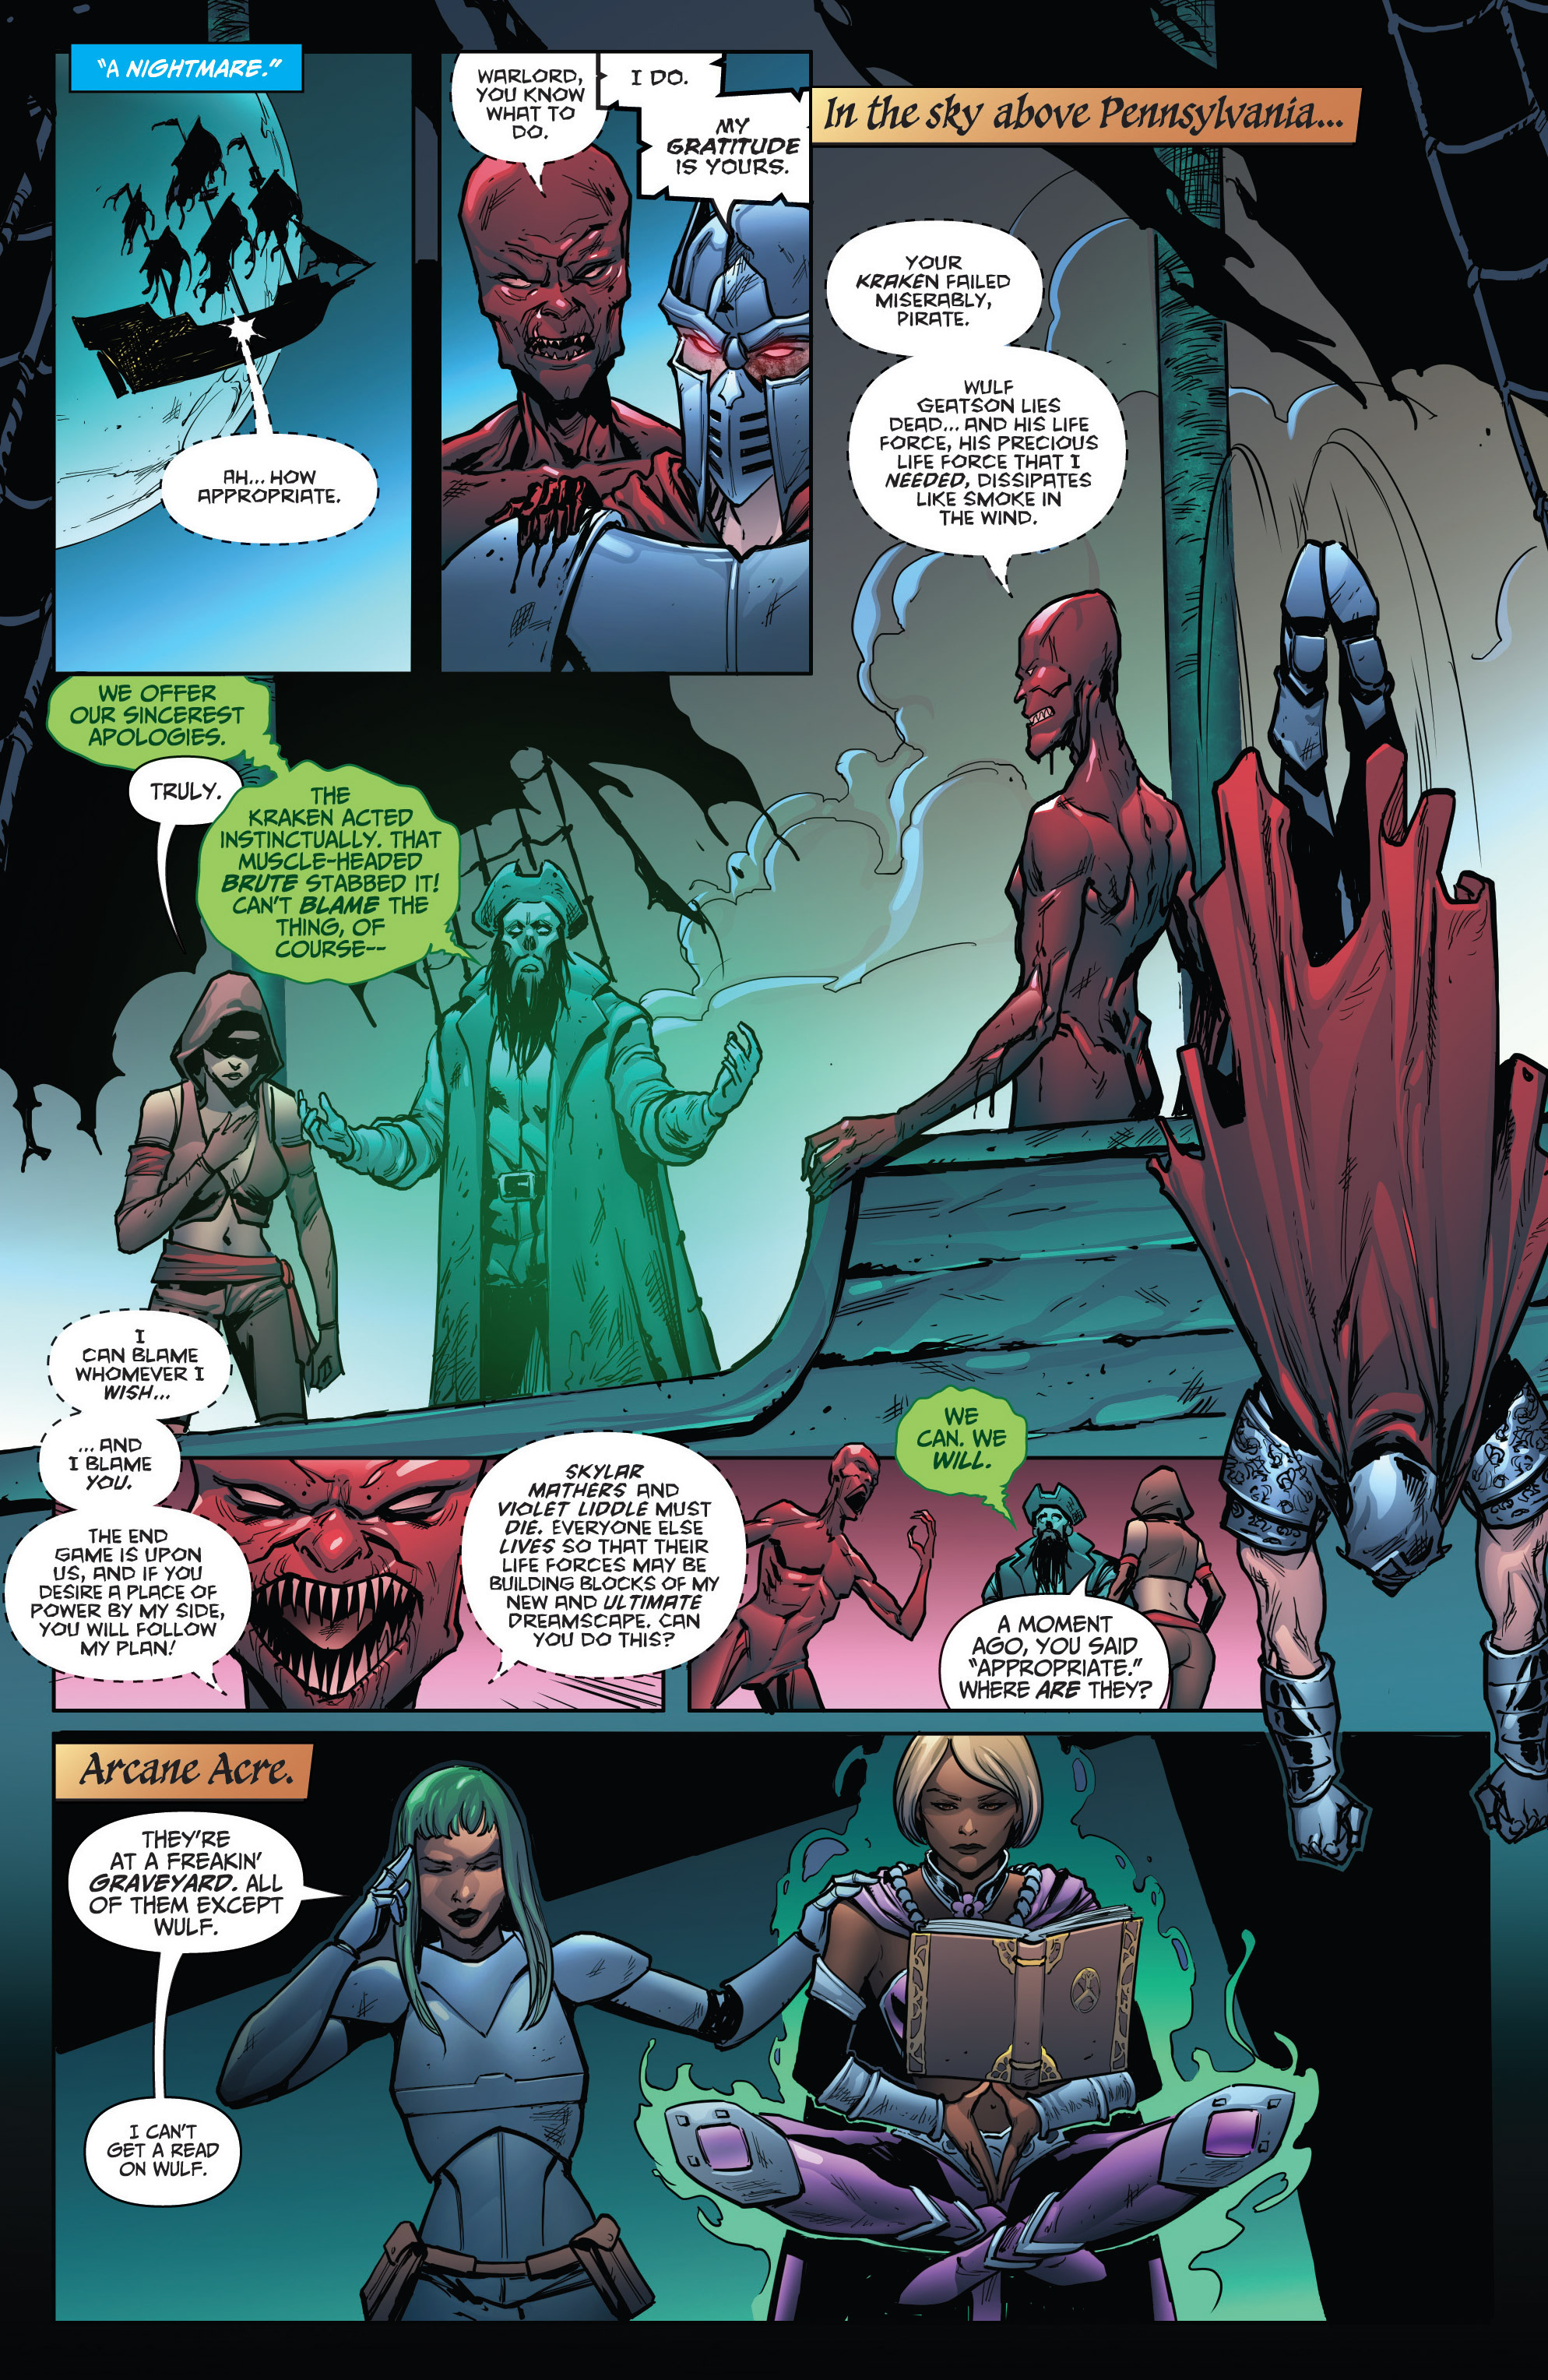 Read online Grimm Fairy Tales: Arcane Acre comic -  Issue # TPB 4 - 149